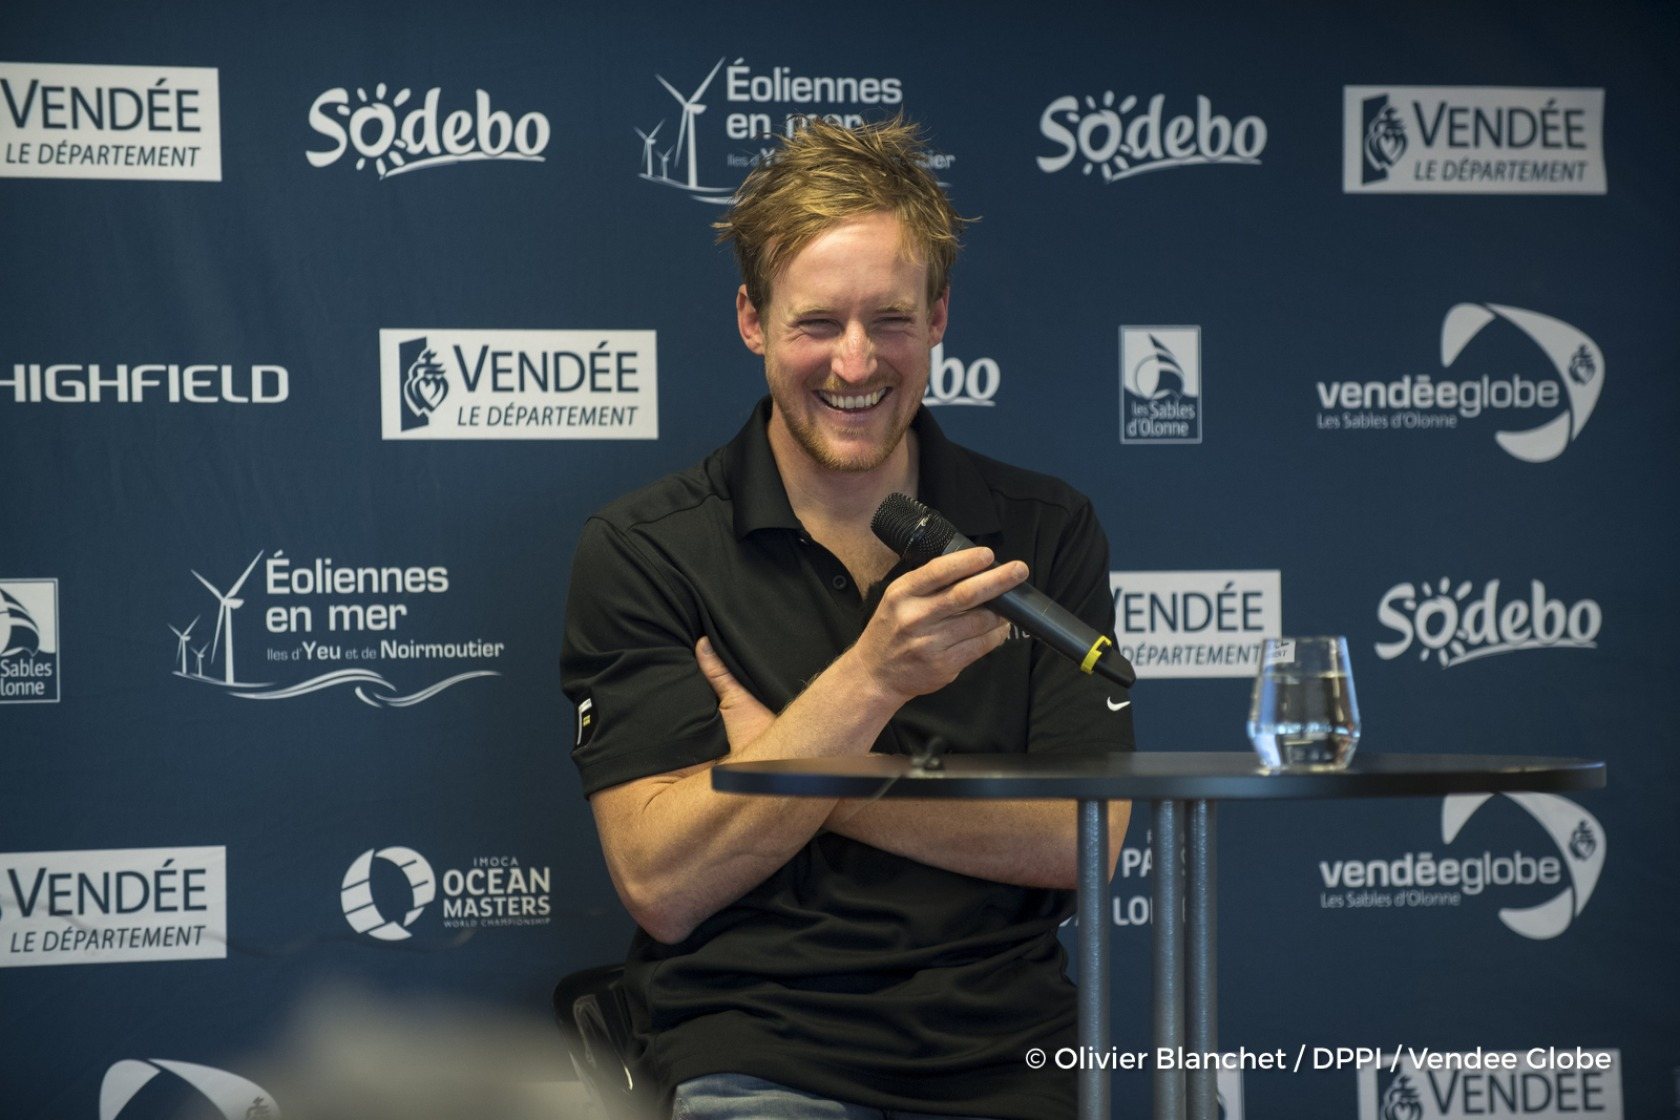 Press conference during Finish arrival of Conrad Colman (NZL), skipper Foresight Natural Energy,16th of the sailing circumnavigation solo race Vendee Globe, in Les Sables d'Olonne, France, on February 24th, 2017 - Photo Olivier Blanchet / DPPI / Vendee Globe